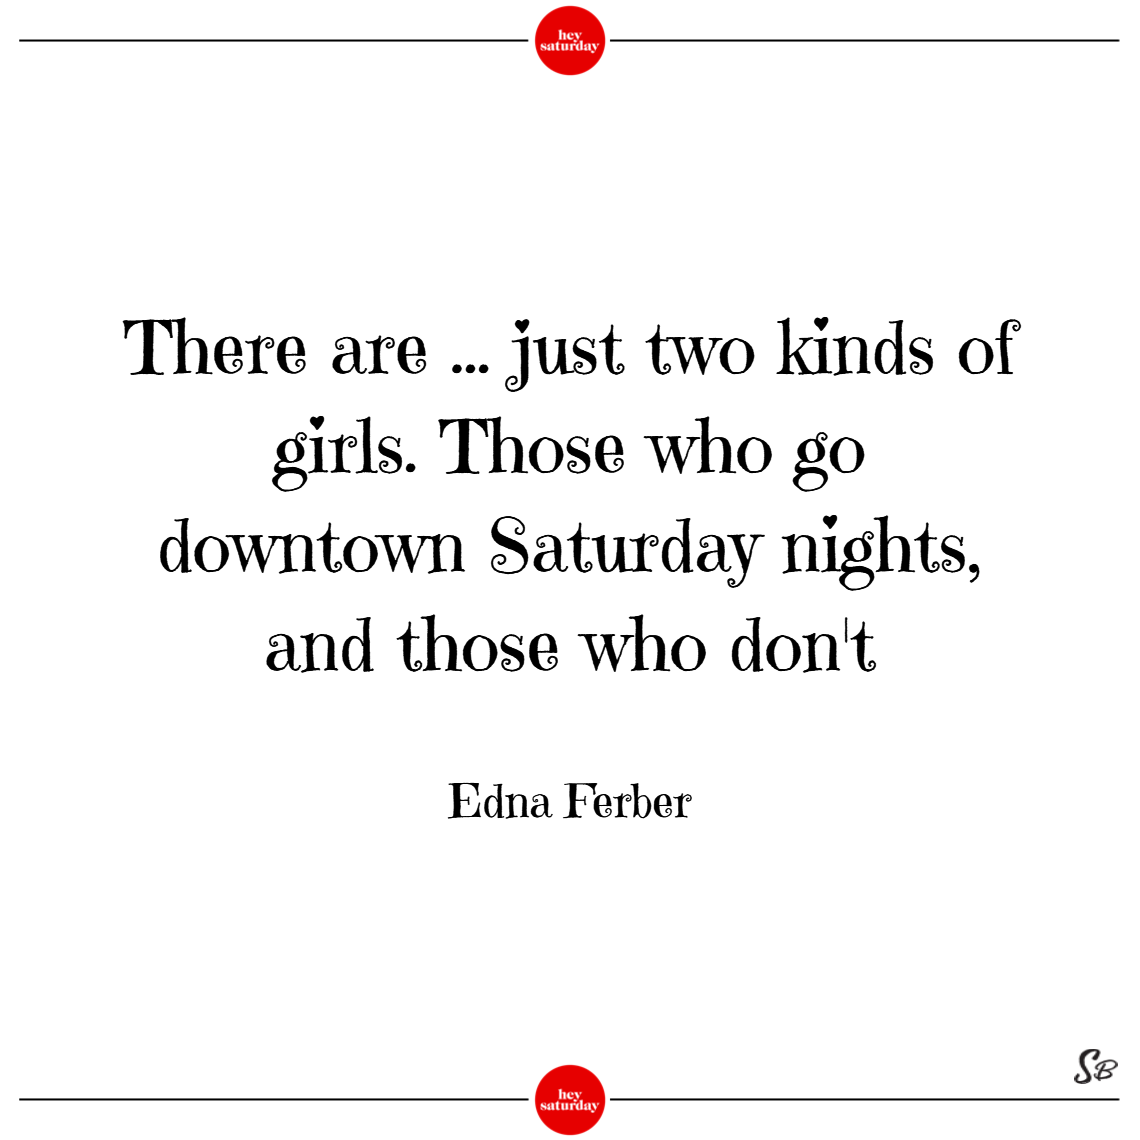 There are ... just two kinds of girls. those who go downtown saturday nights, and those who don't. – edna ferber saturday quotes